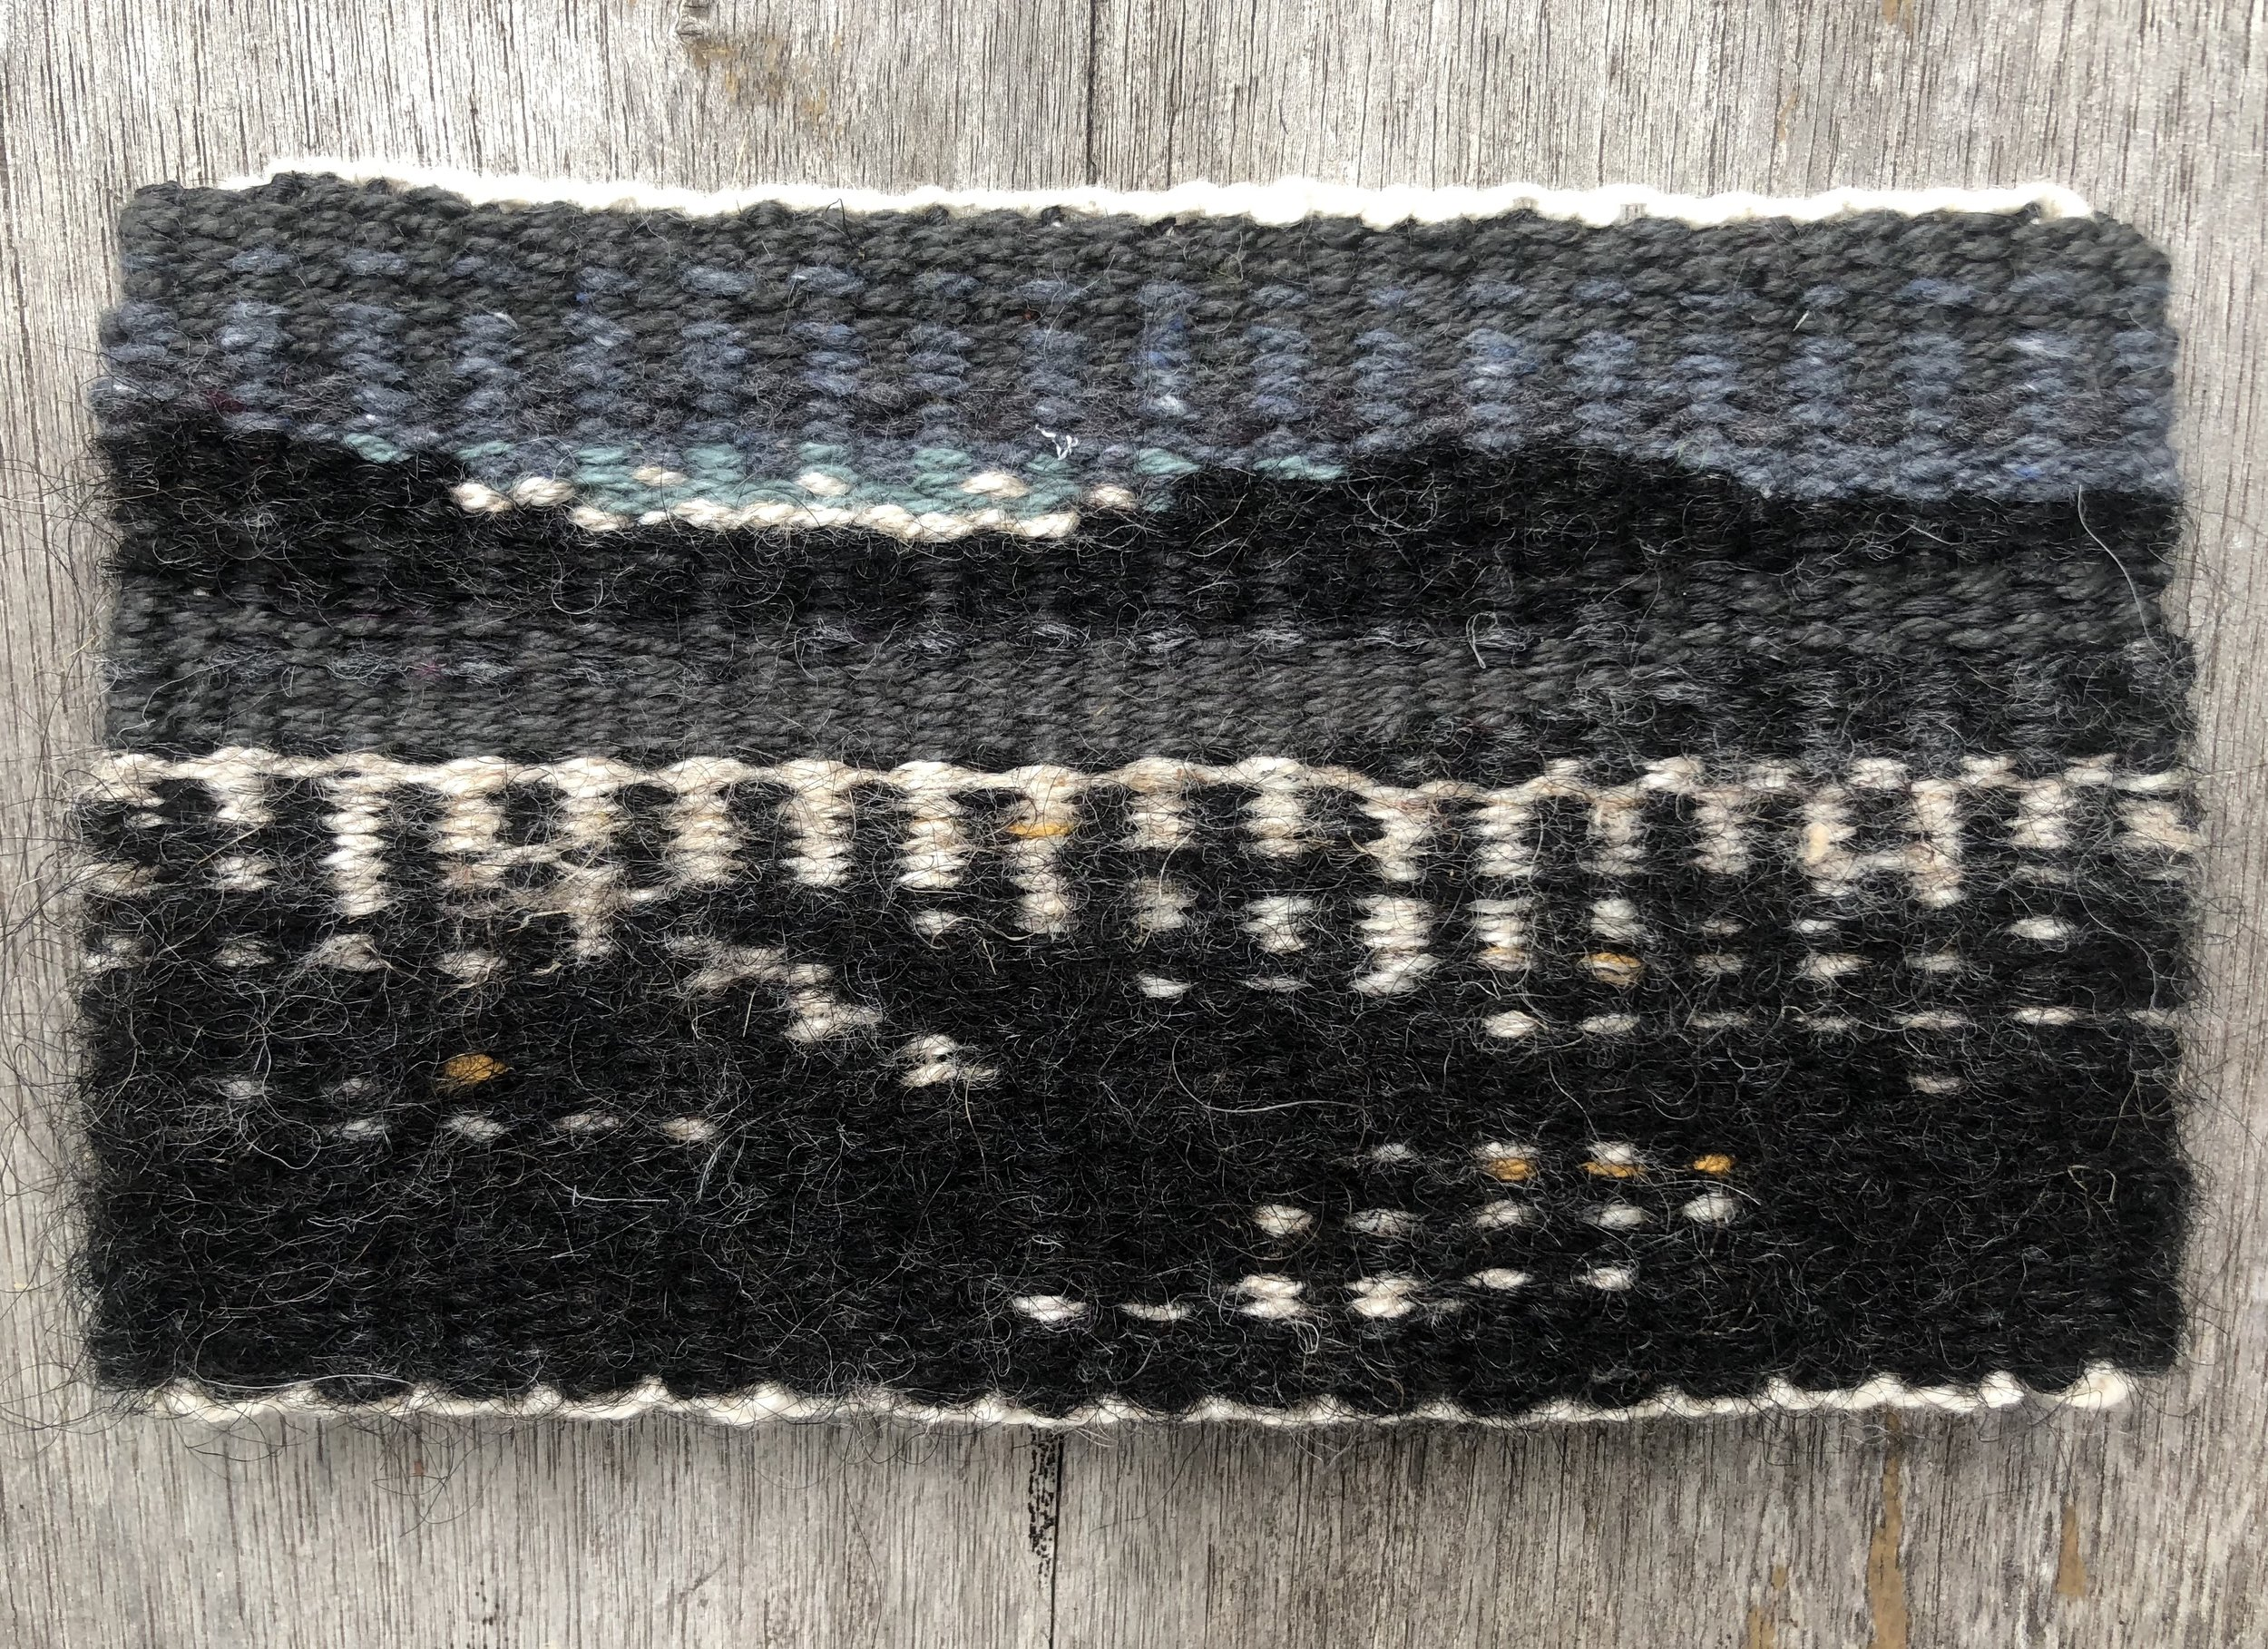 """City of Angels, 2018. Linen, wool, and cotton. 3 1/2"""" x 6""""."""